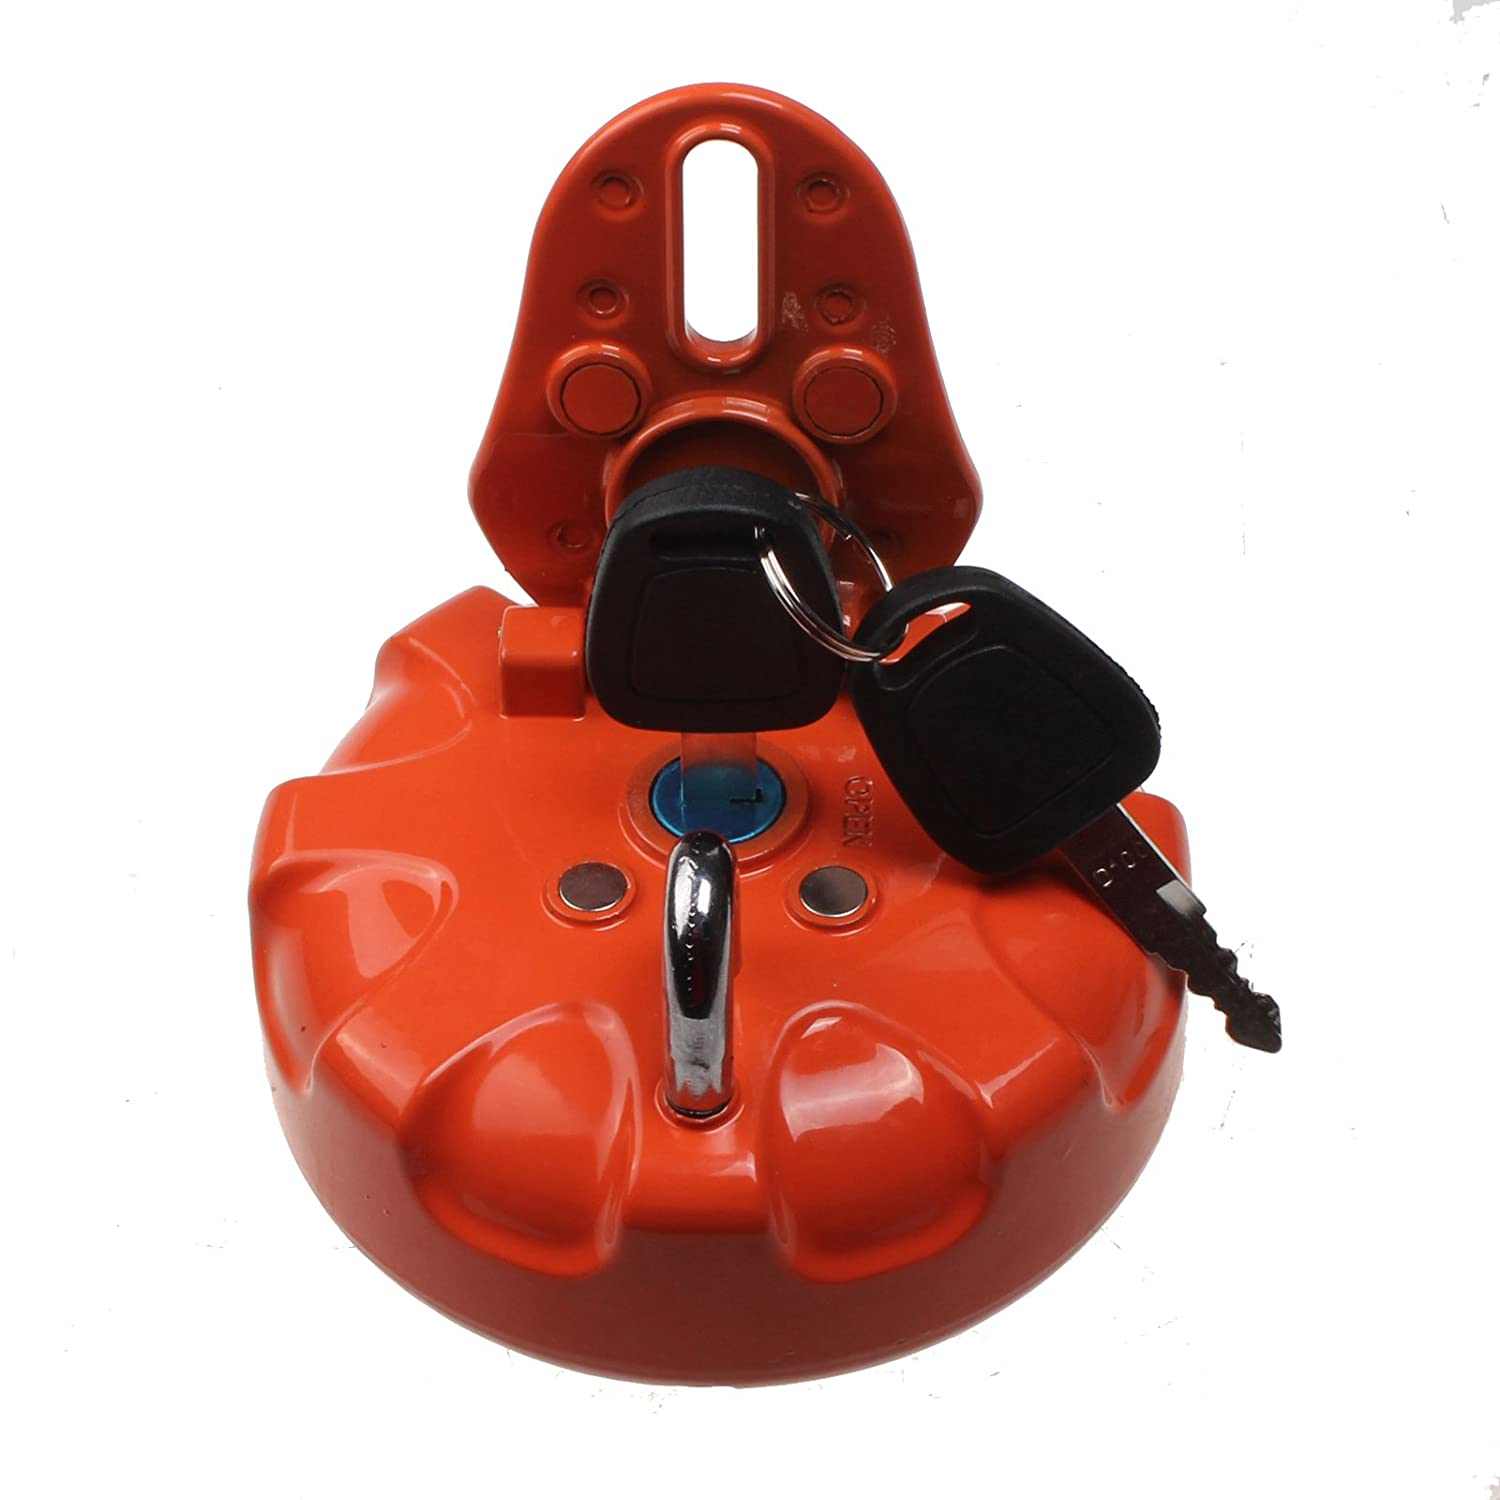 Friday Part Fuel Tank Cap With 2 Keys for Daewoo Doosan Excavator DH215-7 DH225-9 DH300